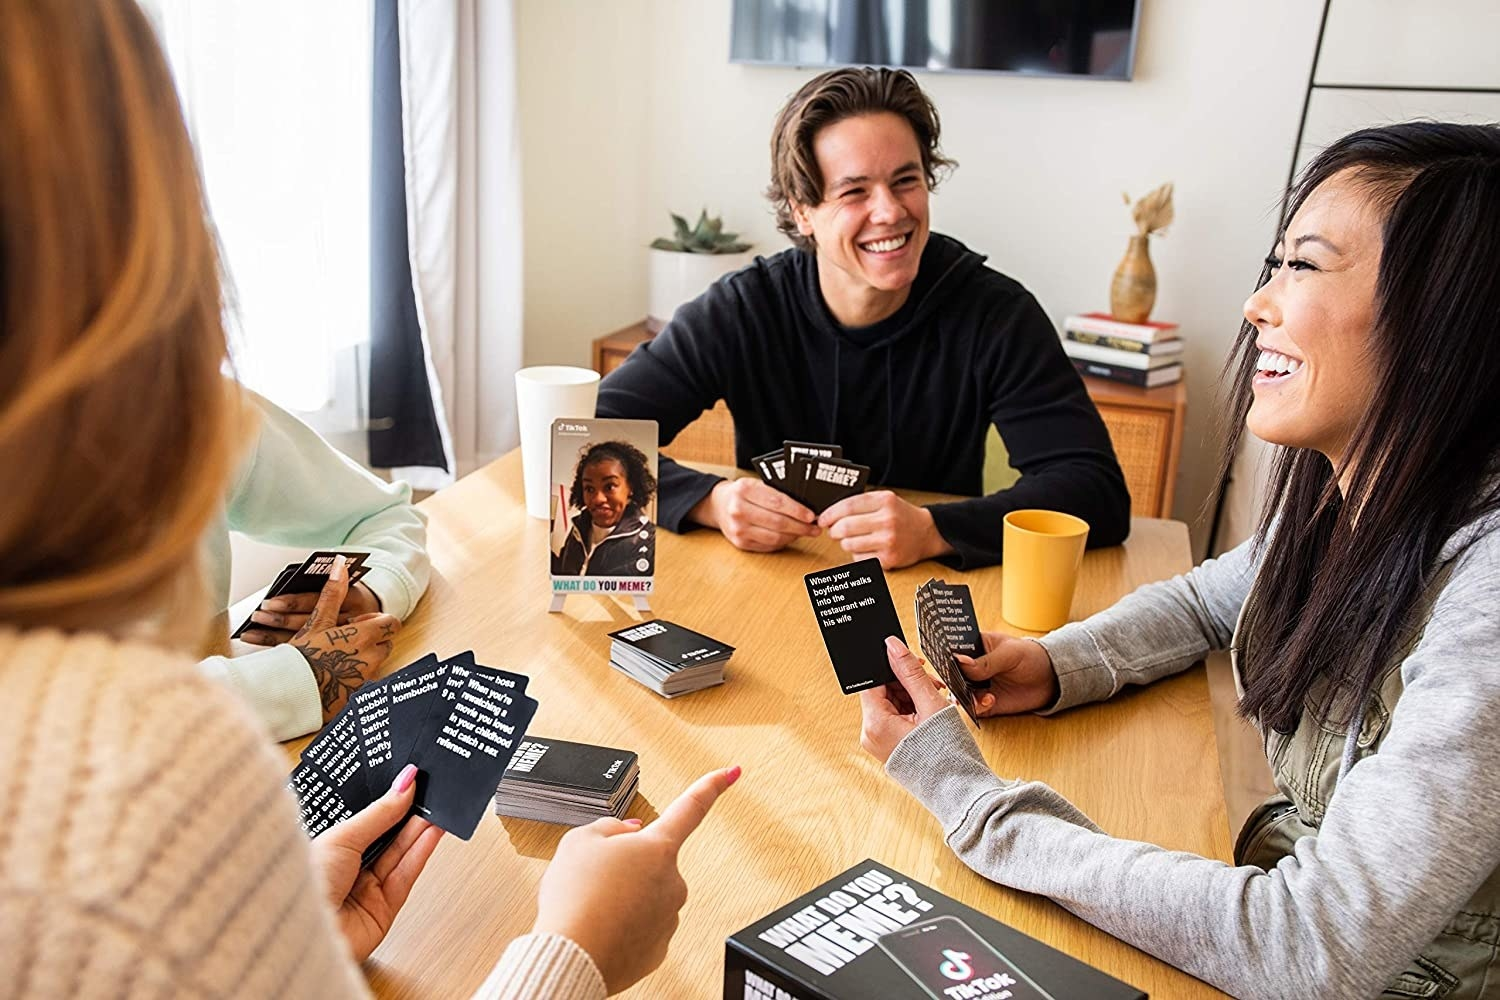 A group of friends play the card game